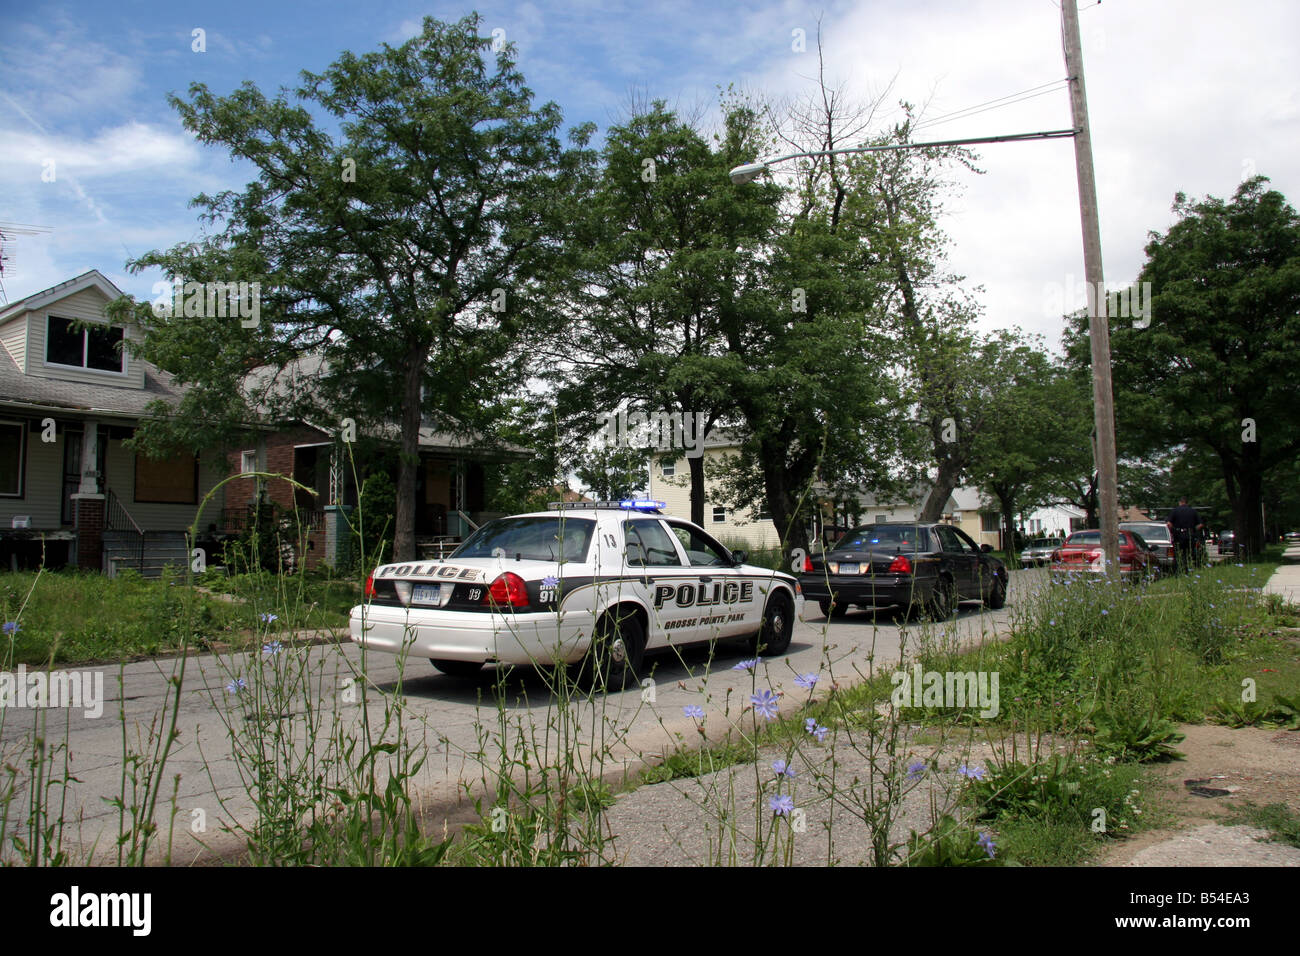 Grosse Pointe Park police car conducting a traffic stop in a poor neighbourhood of Detroit Michigan - Stock Image